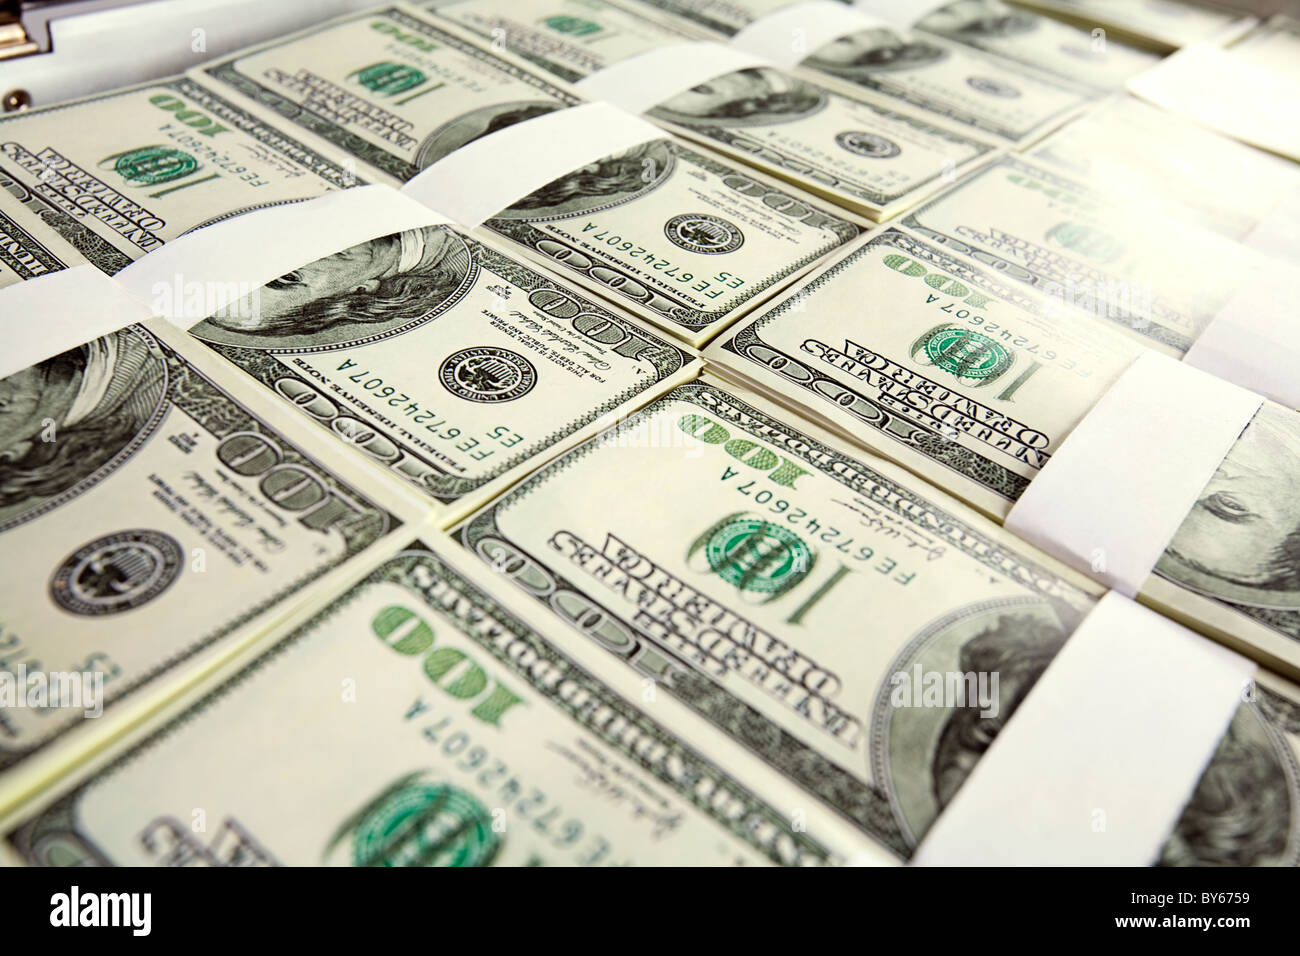 Close-up of million dollars made from lots of hundred bills - Stock Image